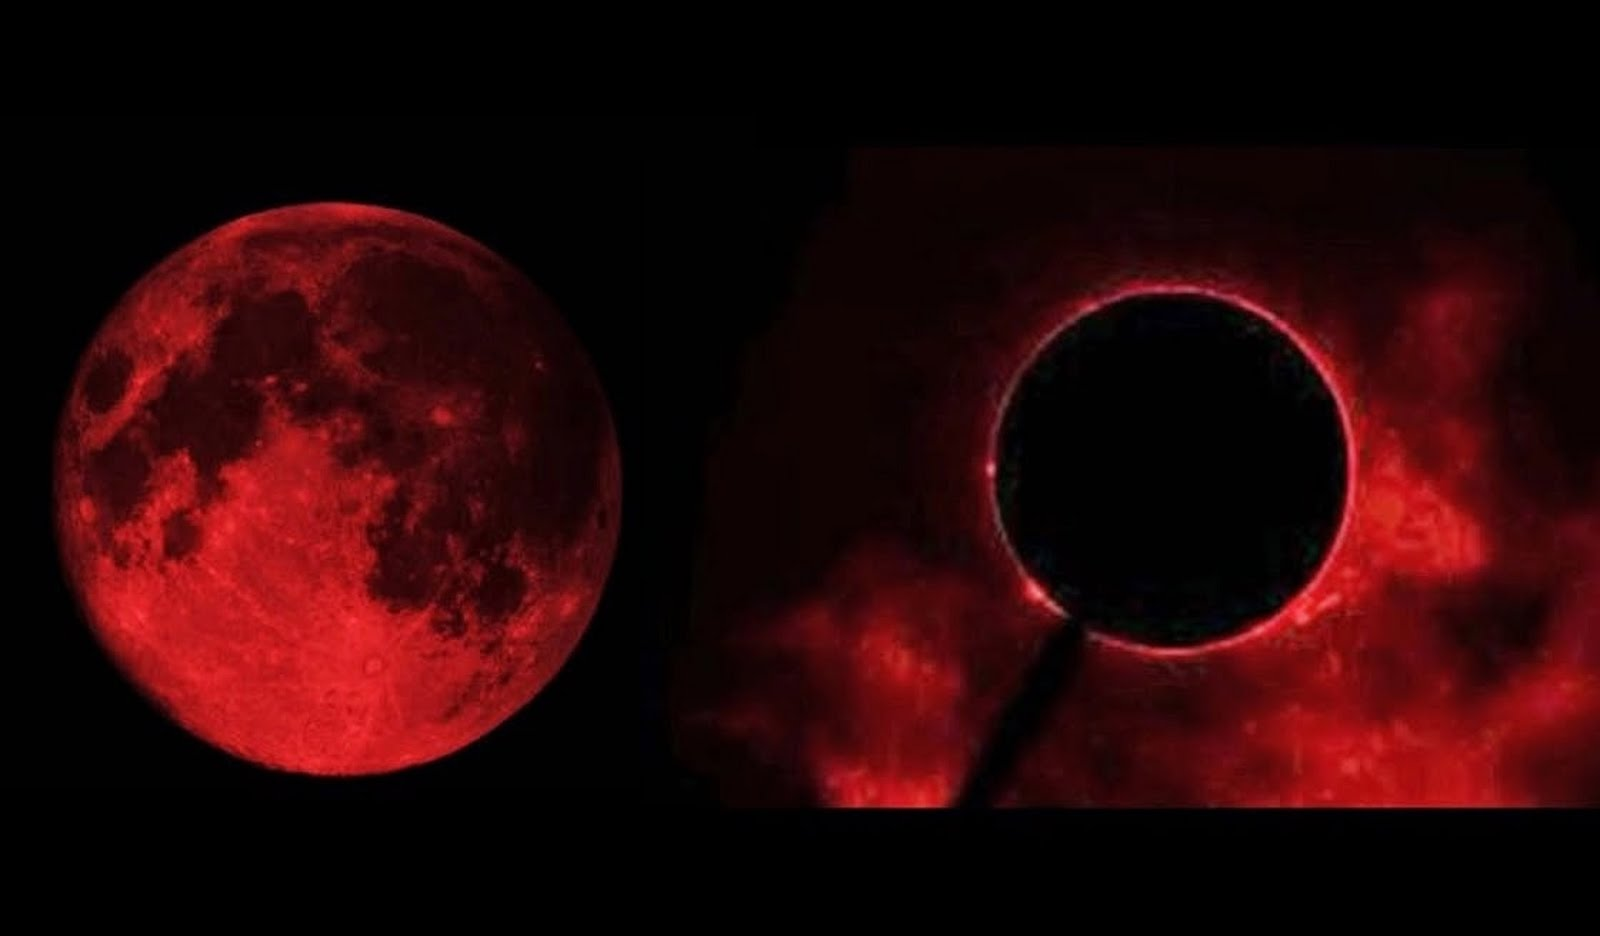 THE BLOOD MOONS OF 2014 - THE TETRON CYCLE